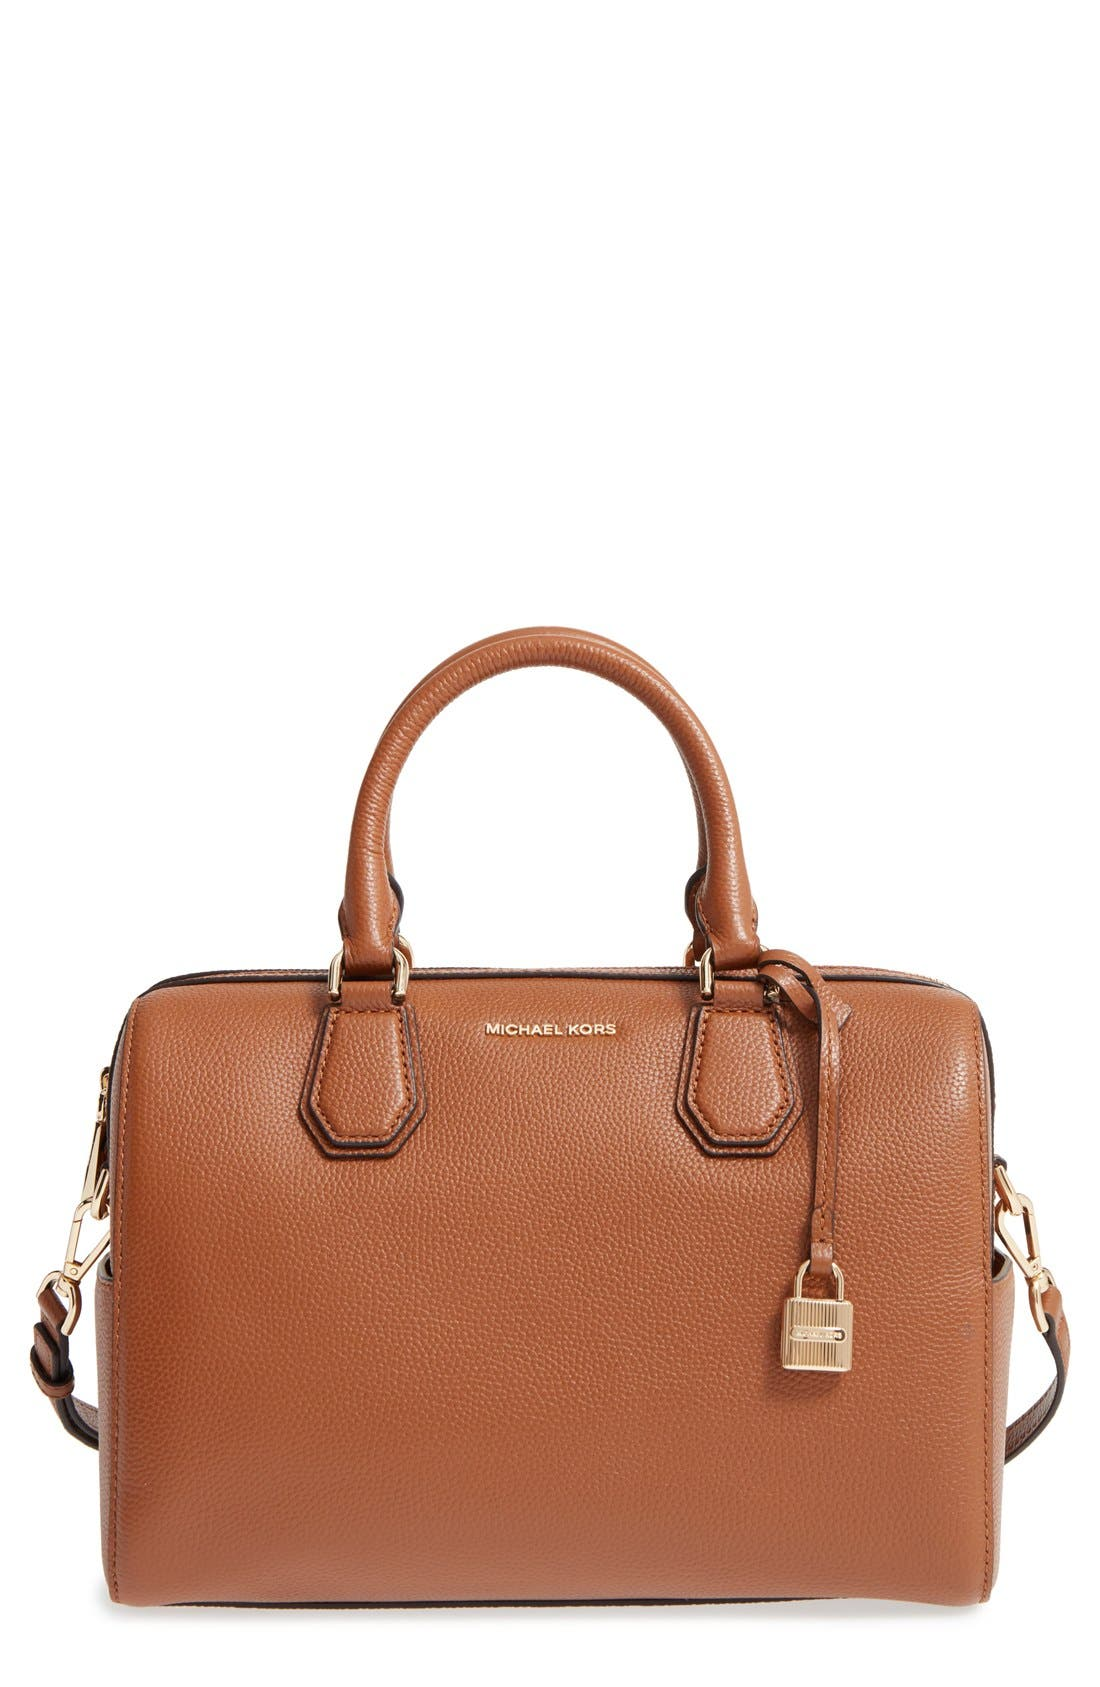 Main Image - MICHAEL Michael Kors Medium Mercer Duffel Bag